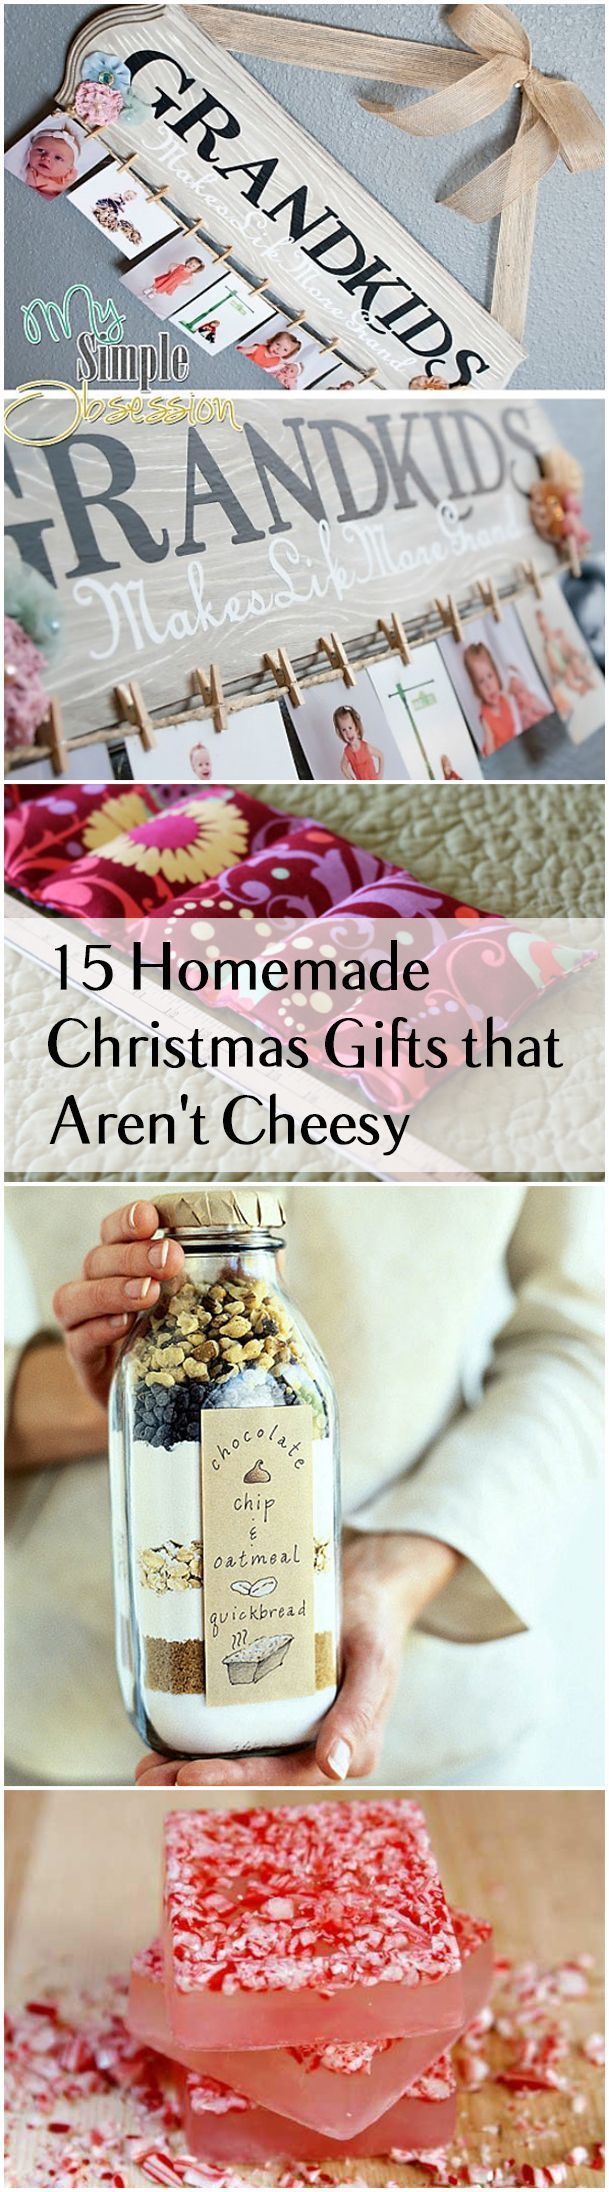 15 Homemade Christmas Gifts That Aren't Cheesy.